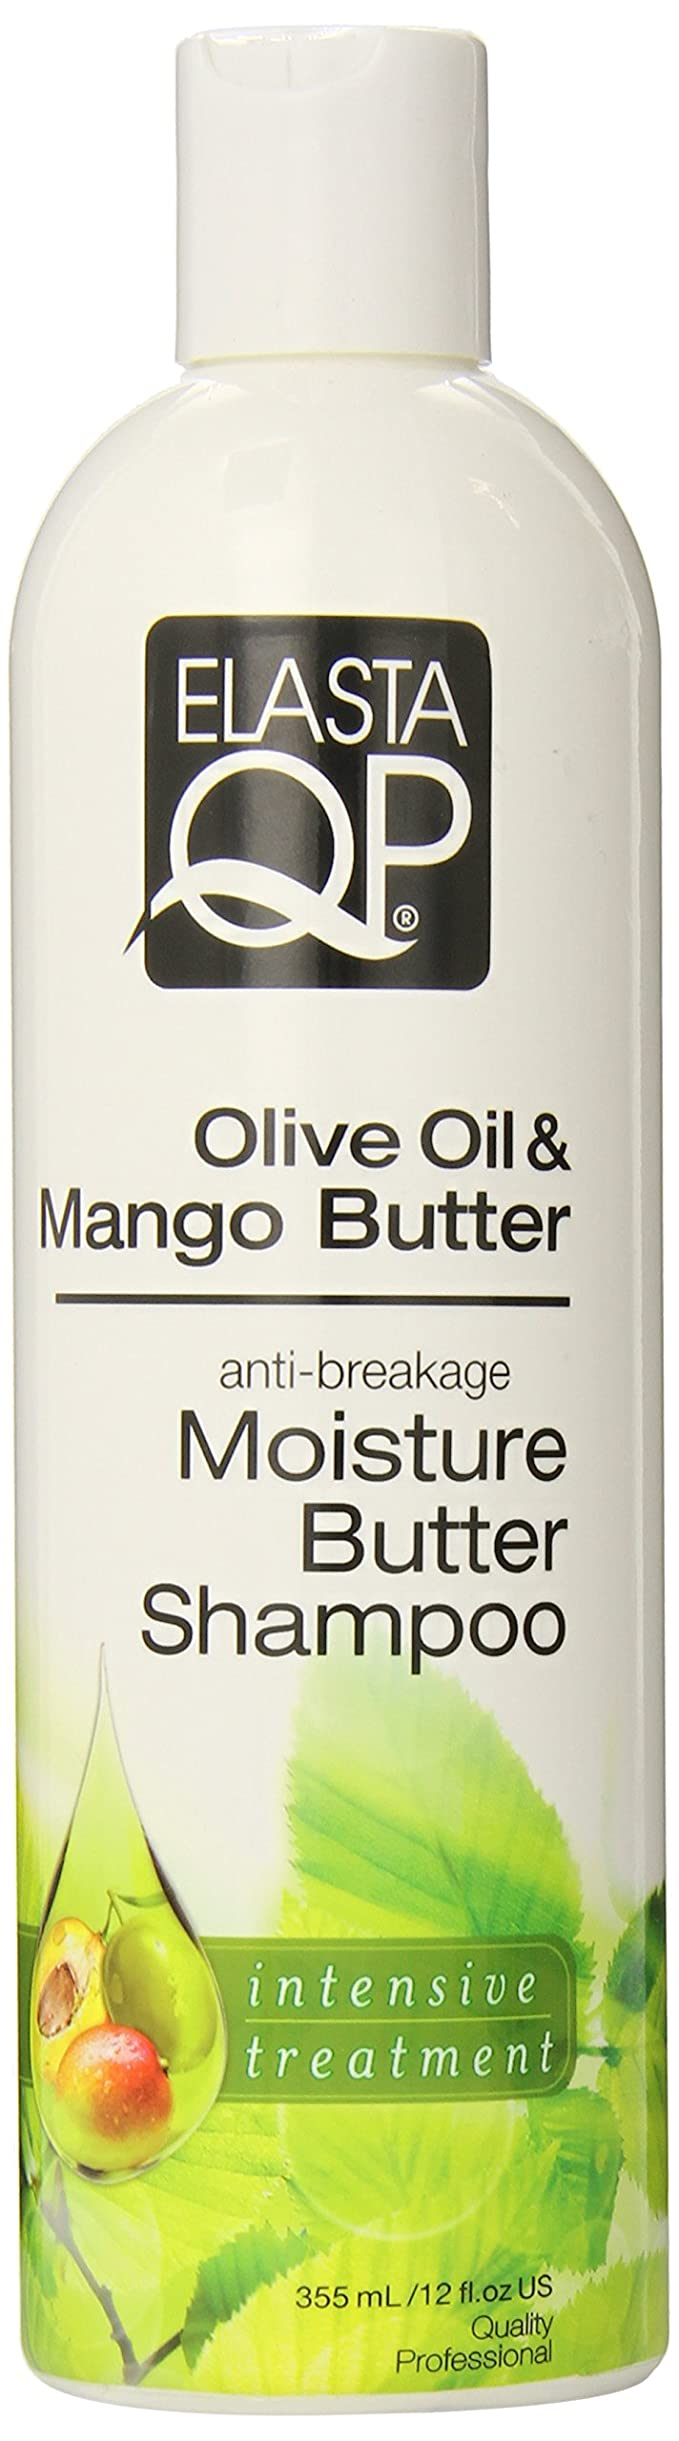 Elasta QP Olive Oil & Mango Butter anti-breakage Moisture Butter Shampoo 12oz